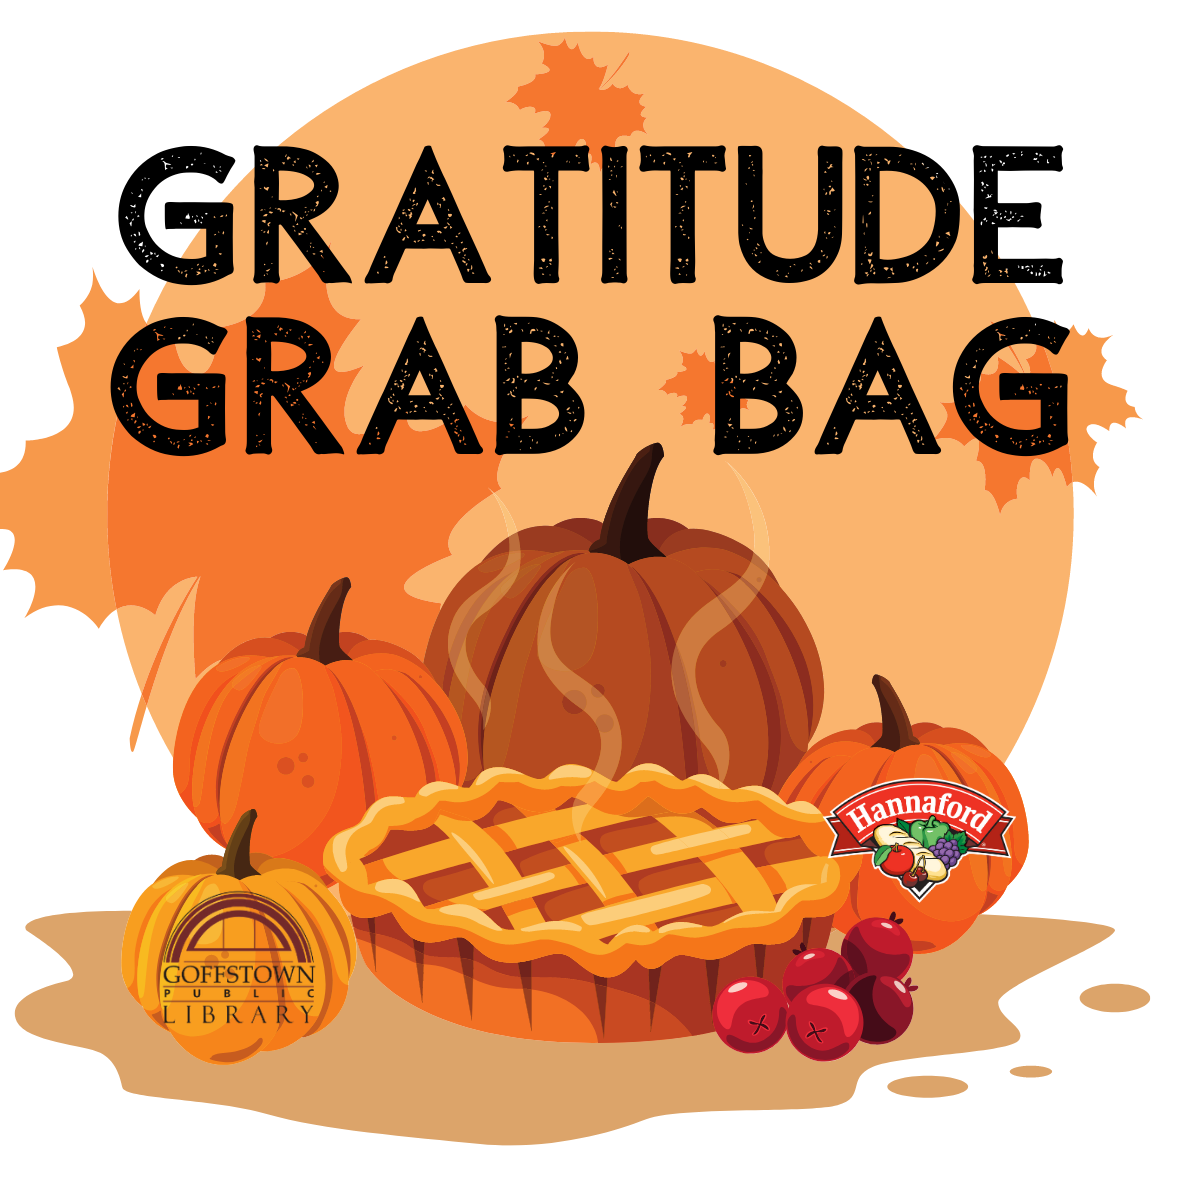 Gratitude Grab Bag Whiles Supplies Last